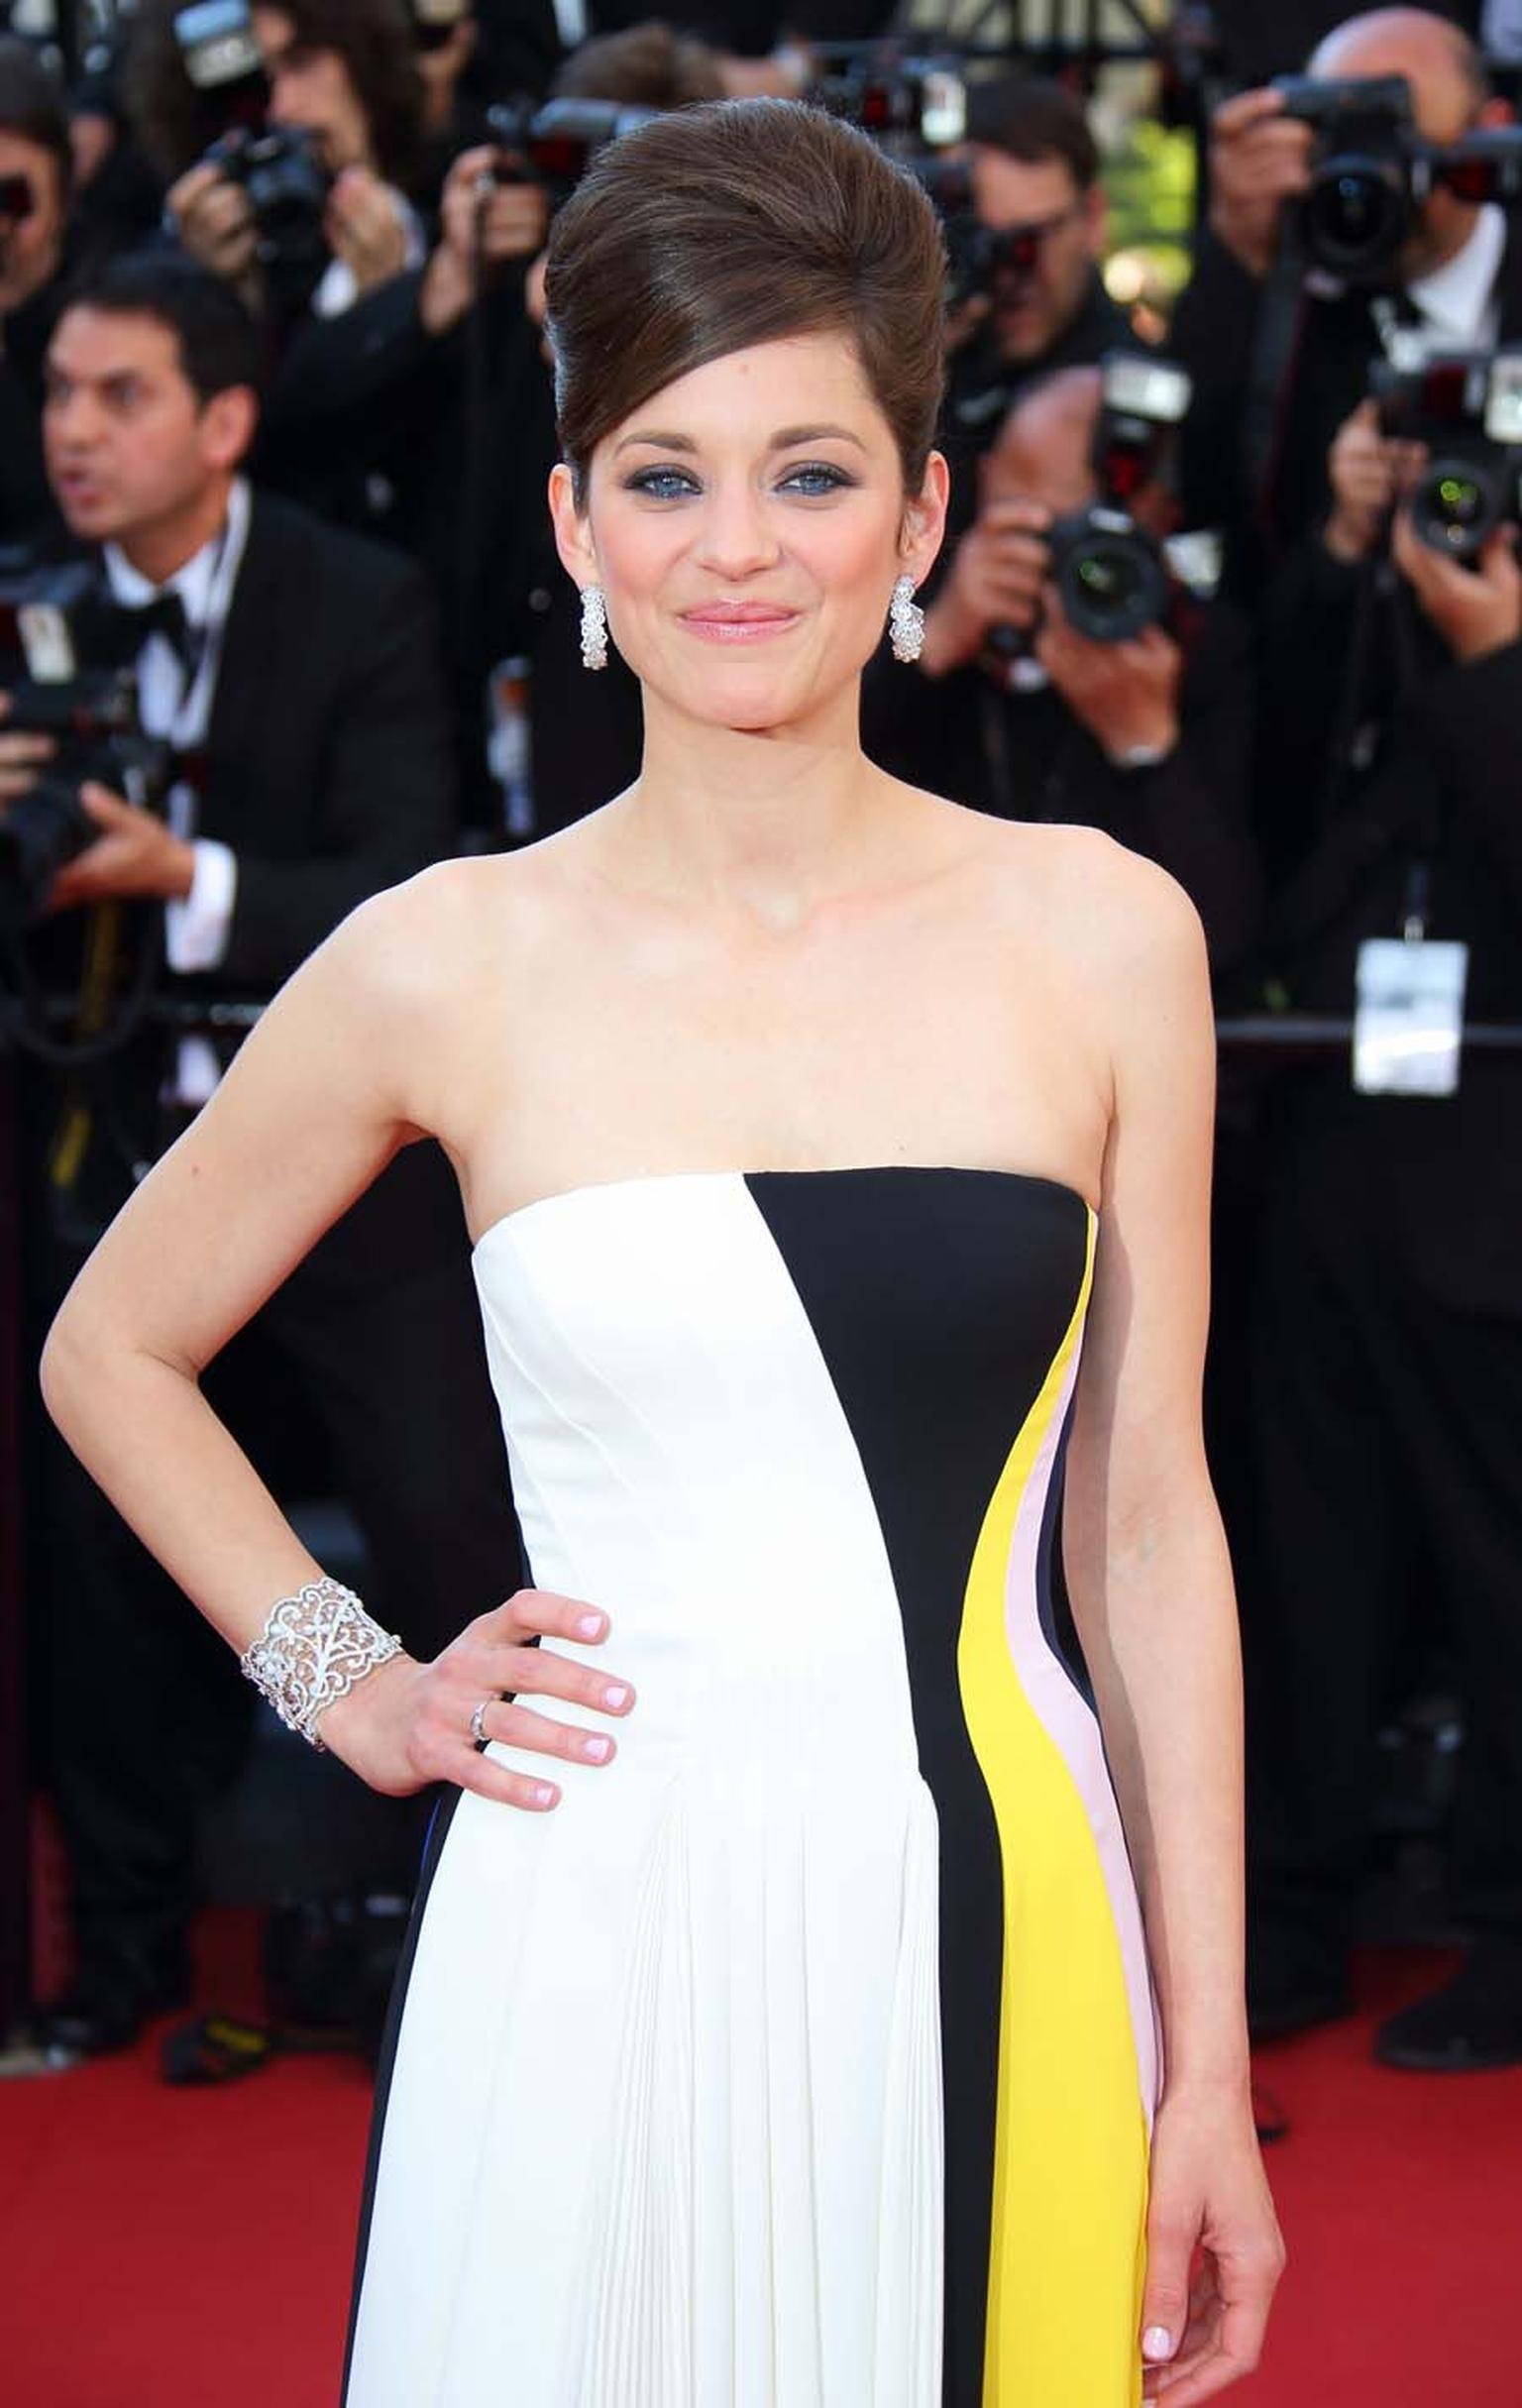 Marion Cotillard was the first to wear Chopard's Green Carpet Collection jewelry, made from Fairmined gold, on the red carpet at the Cannes Film Festival 2013.